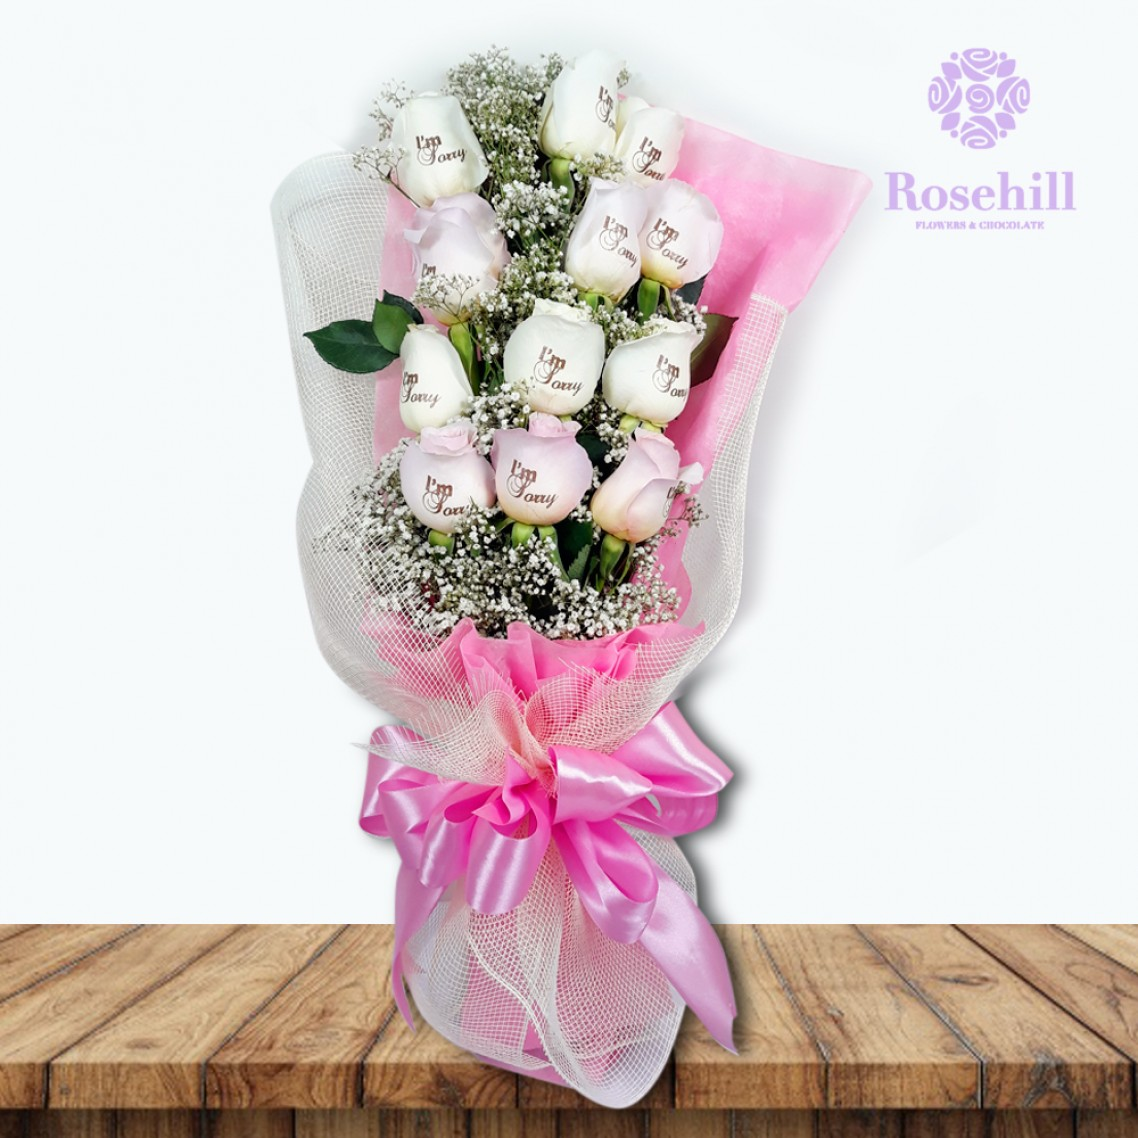 1524671269-h-250-_Rosehill's I'm Sorry Bouquet with Babys Breath- Pink and White.jpg